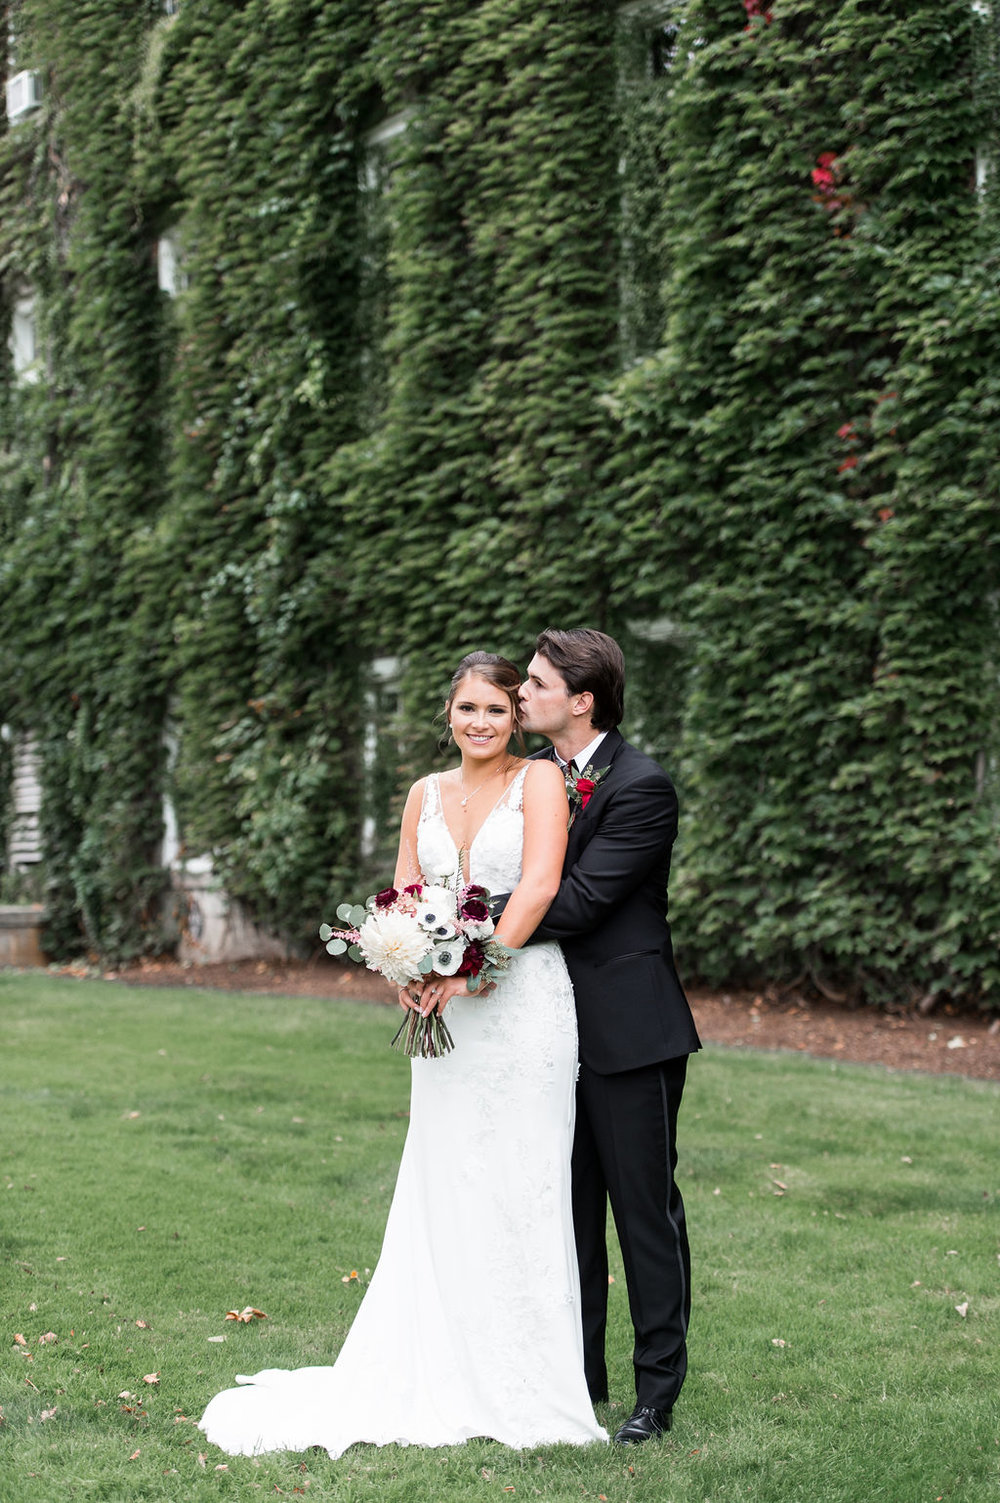 T+M's Timeless Fall Wedding at Holy Cross